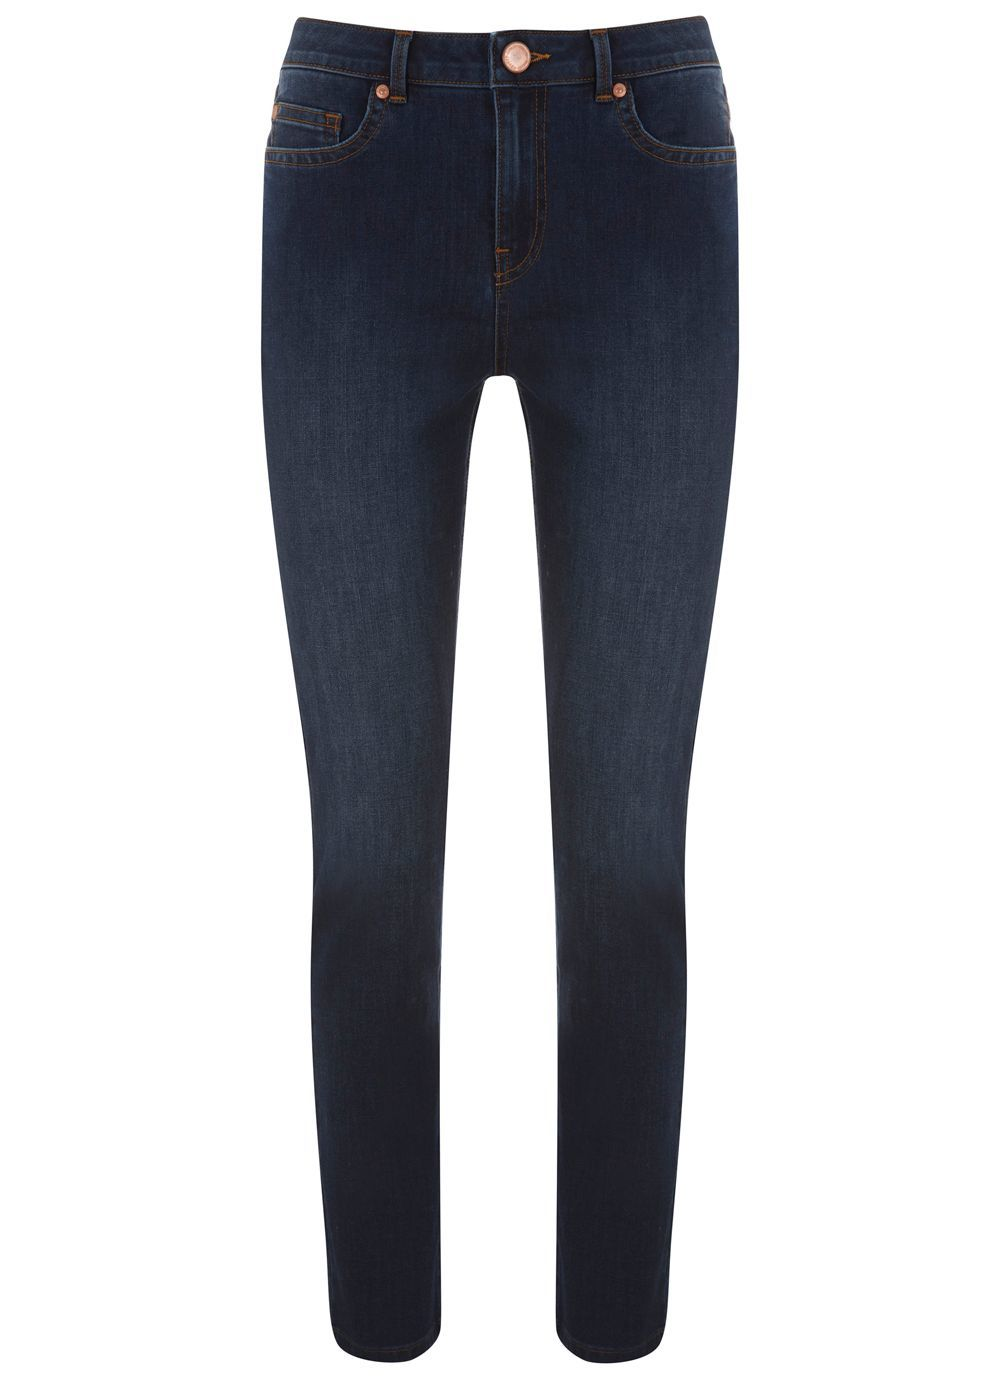 Arizona Blue Relaxed Skinny, Blue - style: skinny leg; length: standard; pattern: plain; pocket detail: traditional 5 pocket; waist: mid/regular rise; predominant colour: navy; occasions: casual; fibres: cotton - stretch; texture group: denim; pattern type: fabric; season: s/s 2016; wardrobe: basic